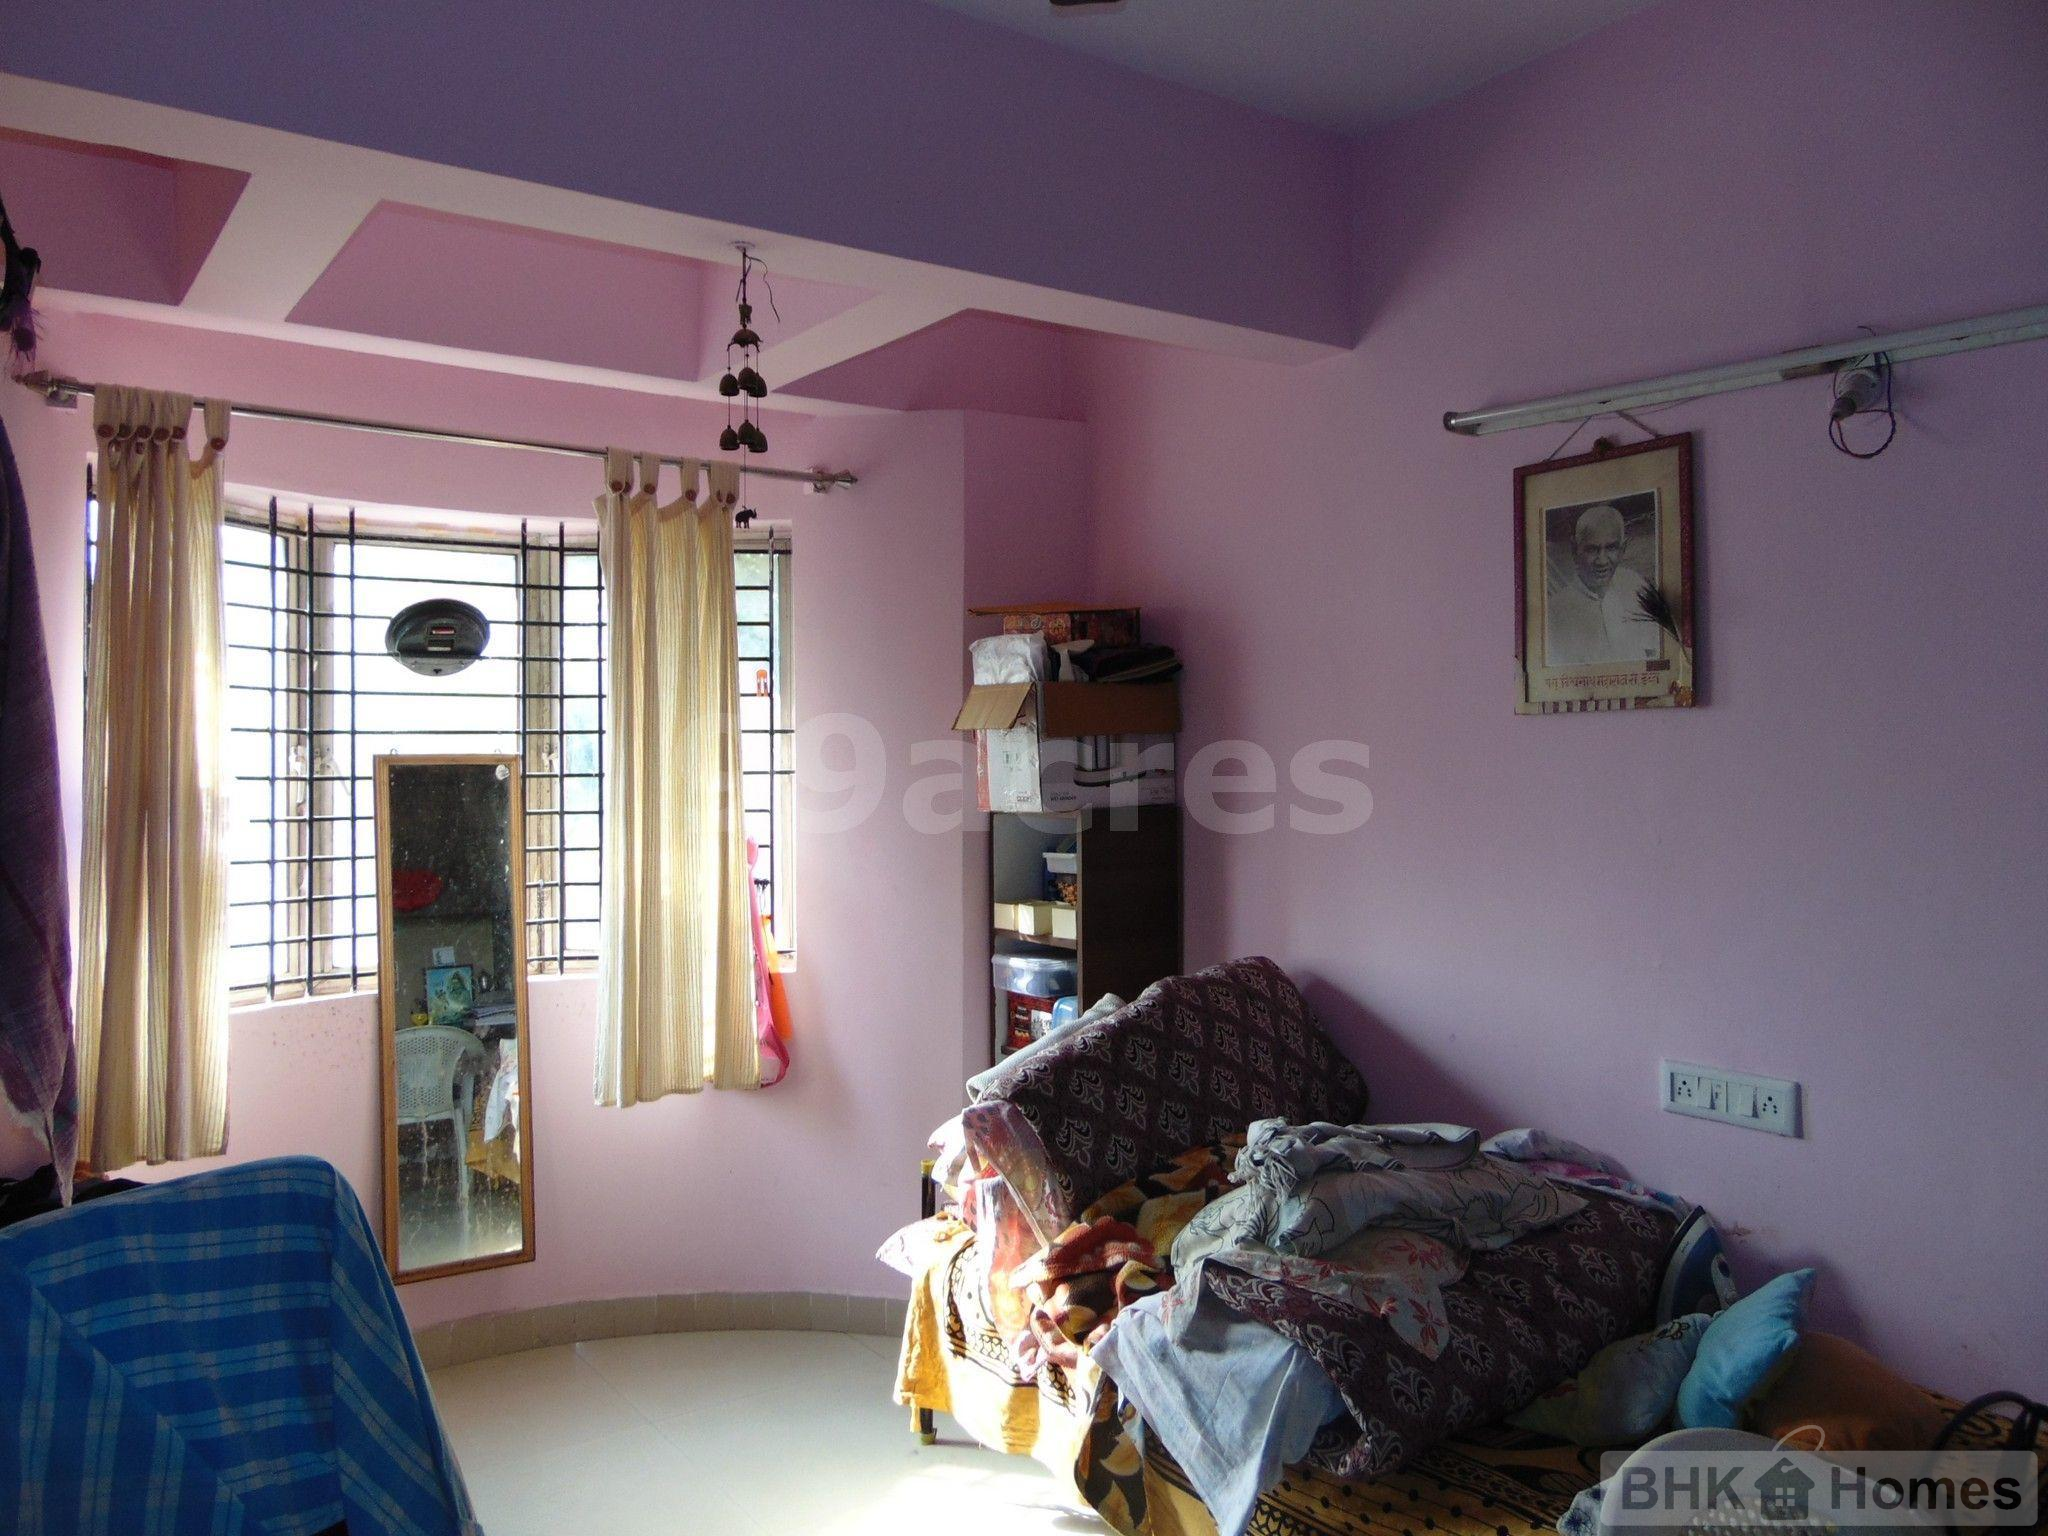 2 BHK  Apartment for Sale in Gayatri Niketan